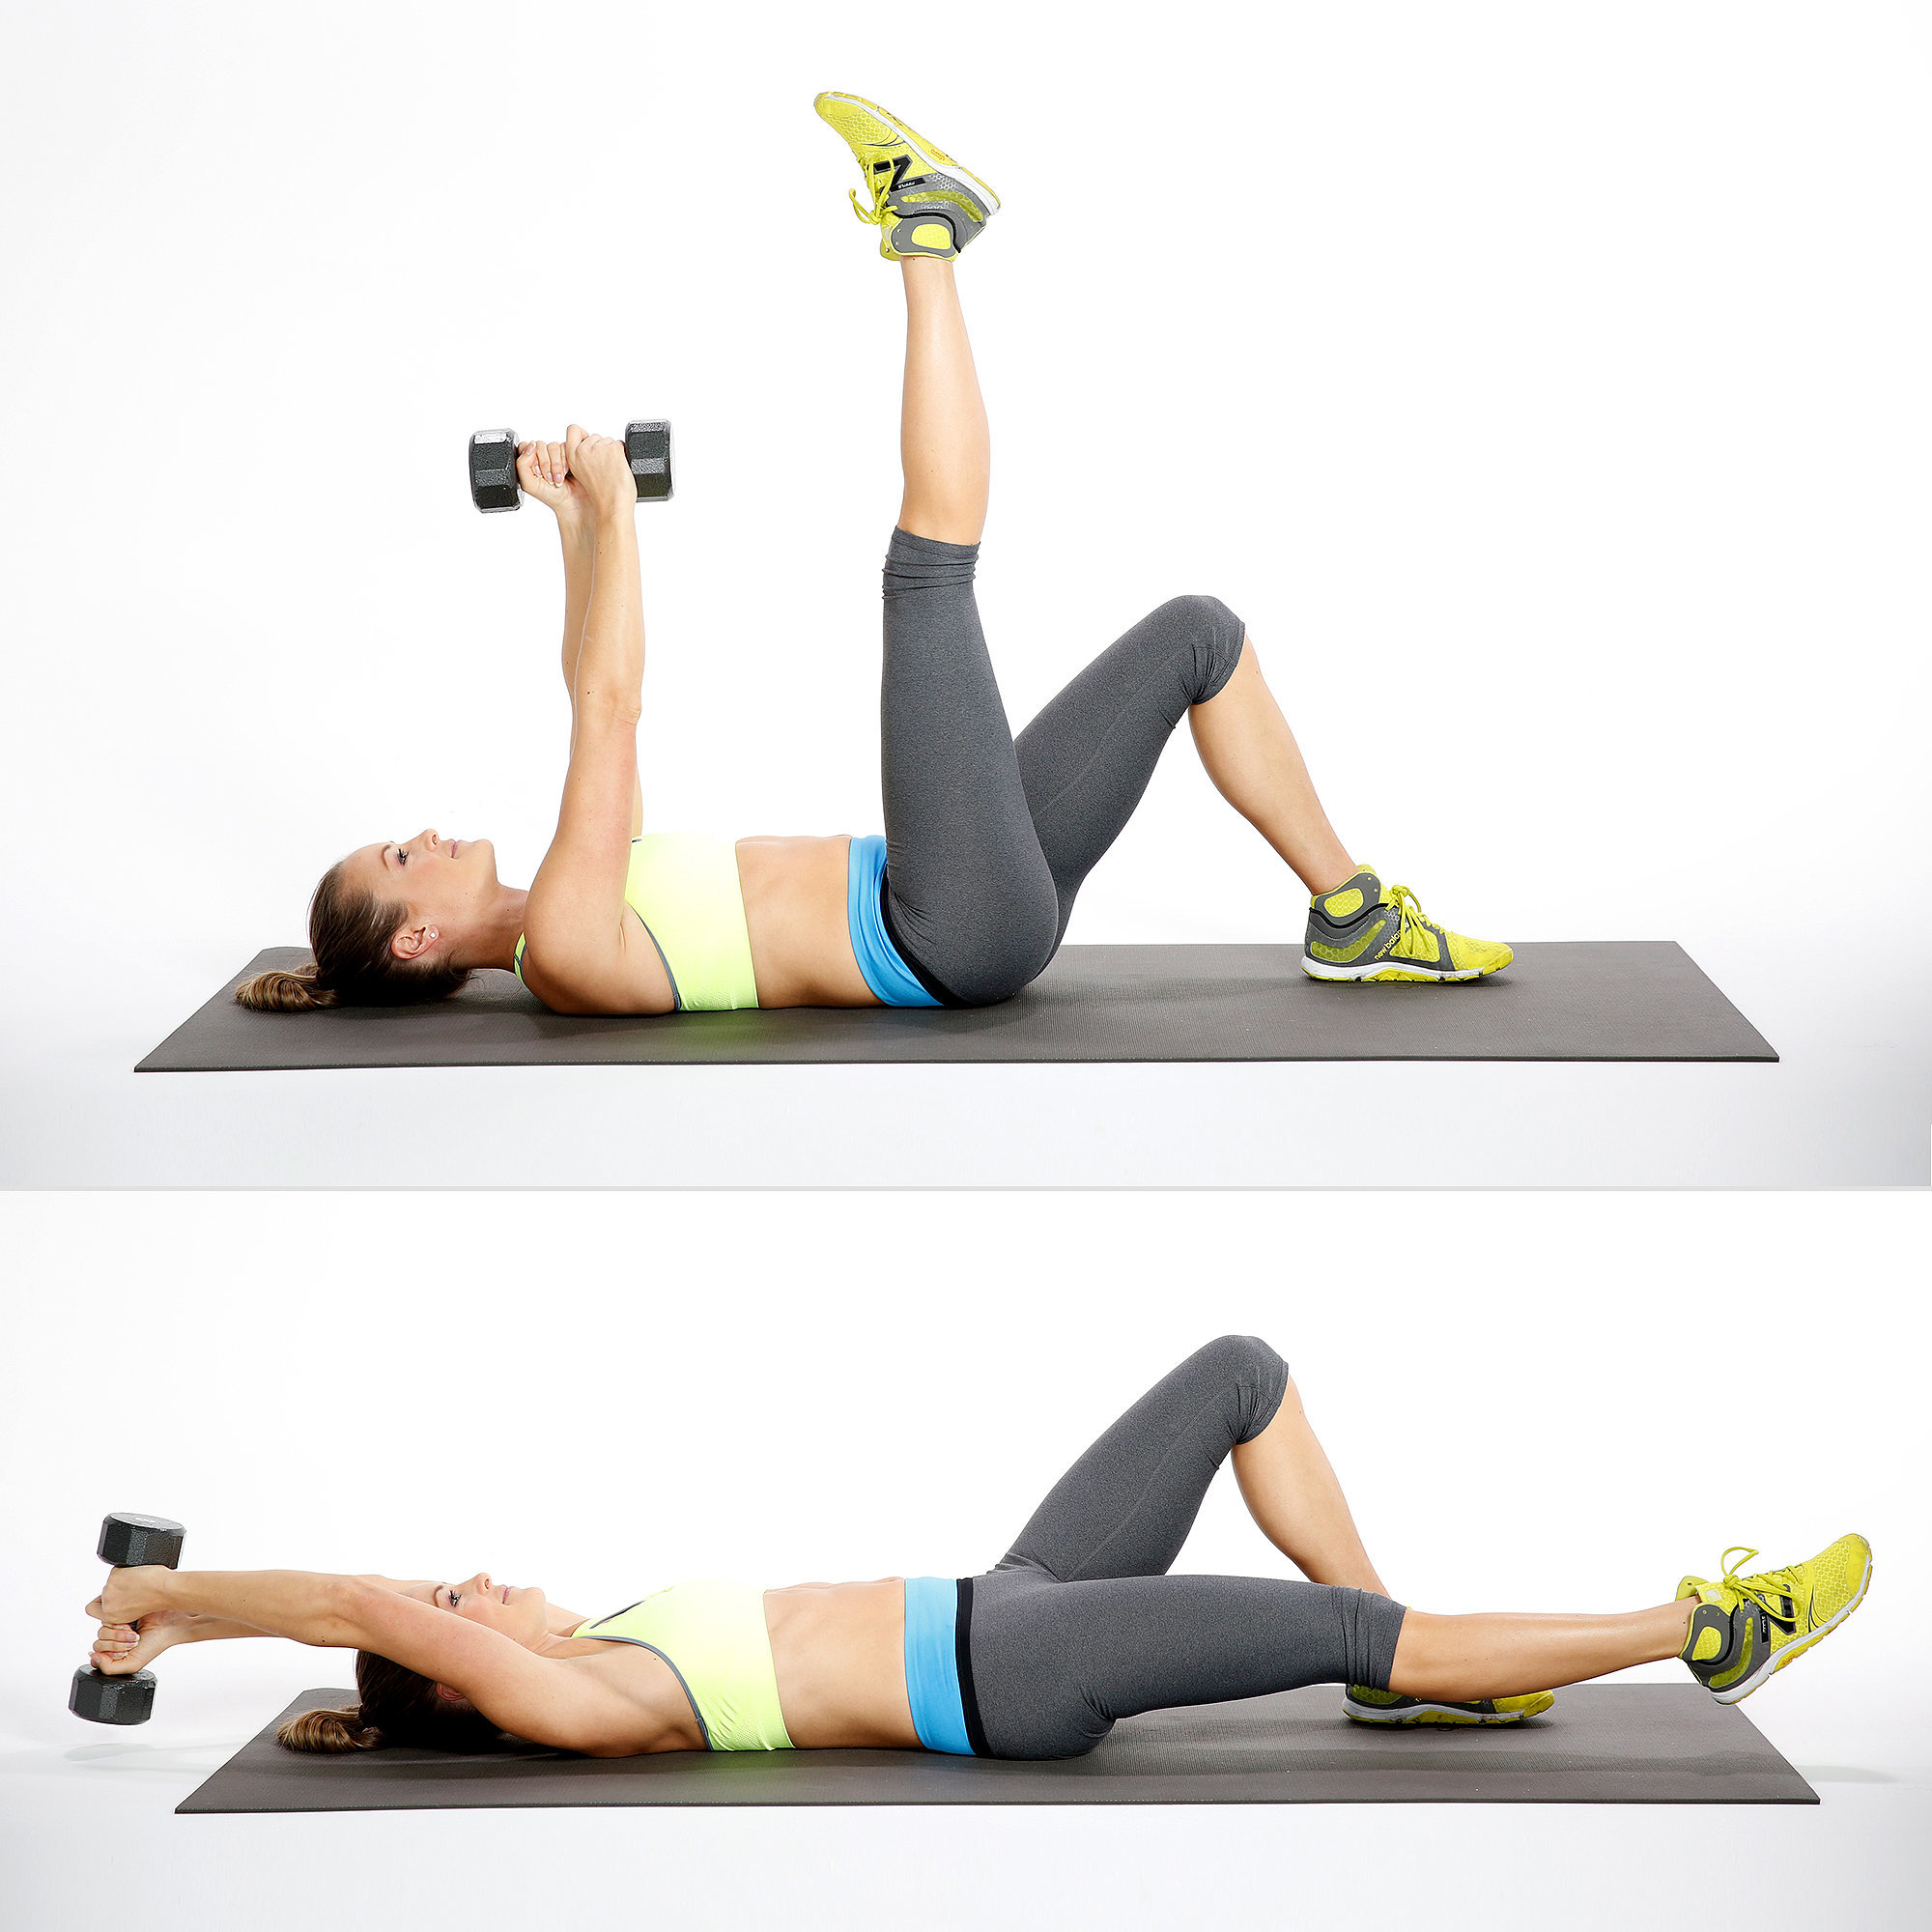 Overhead Reach With Leg Lower These Are The Moves For Insanely Cut Abs Popsugar Fitness